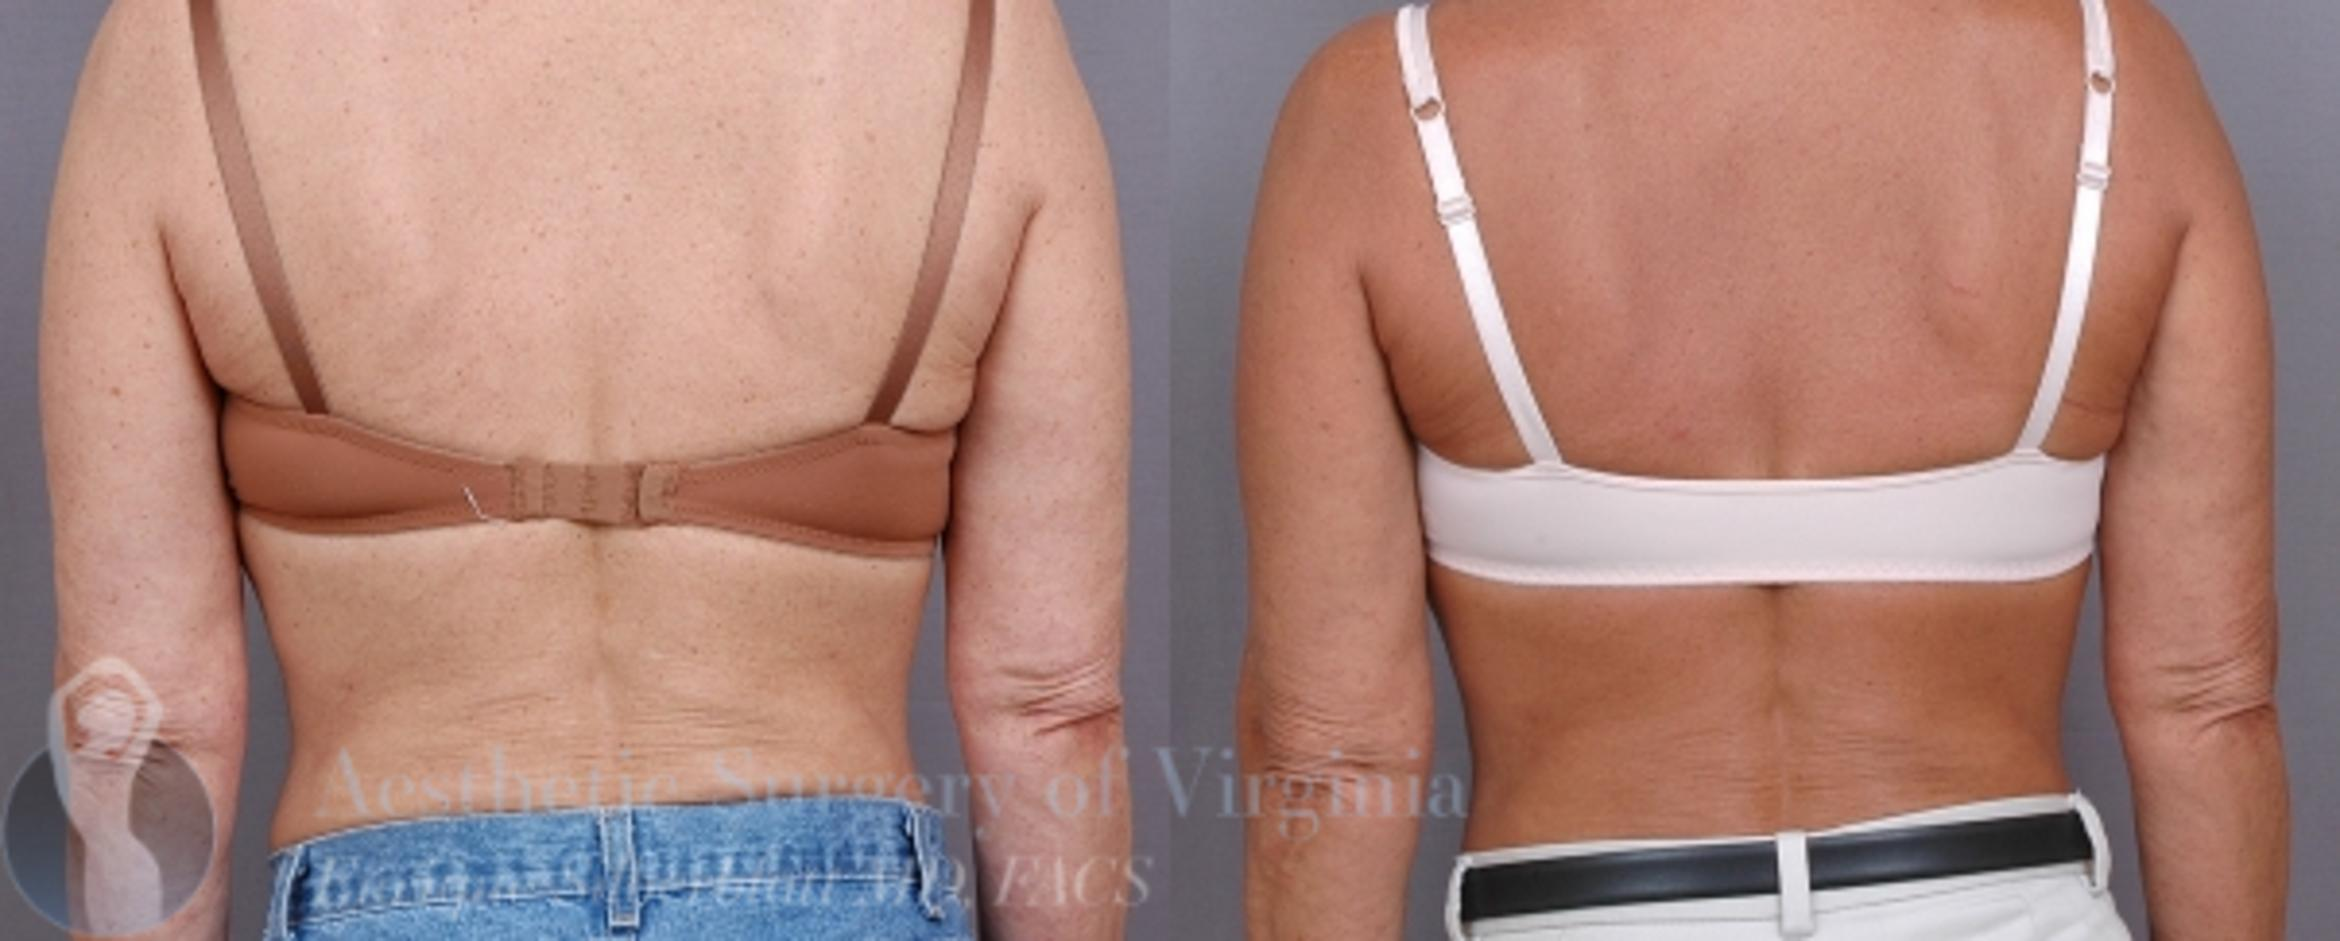 Arm Lift Surgery Case 32 Before & After View #1 | Roanoke, VA | Aesthetic Surgery of Virginia: Enrique Silberblatt, MD